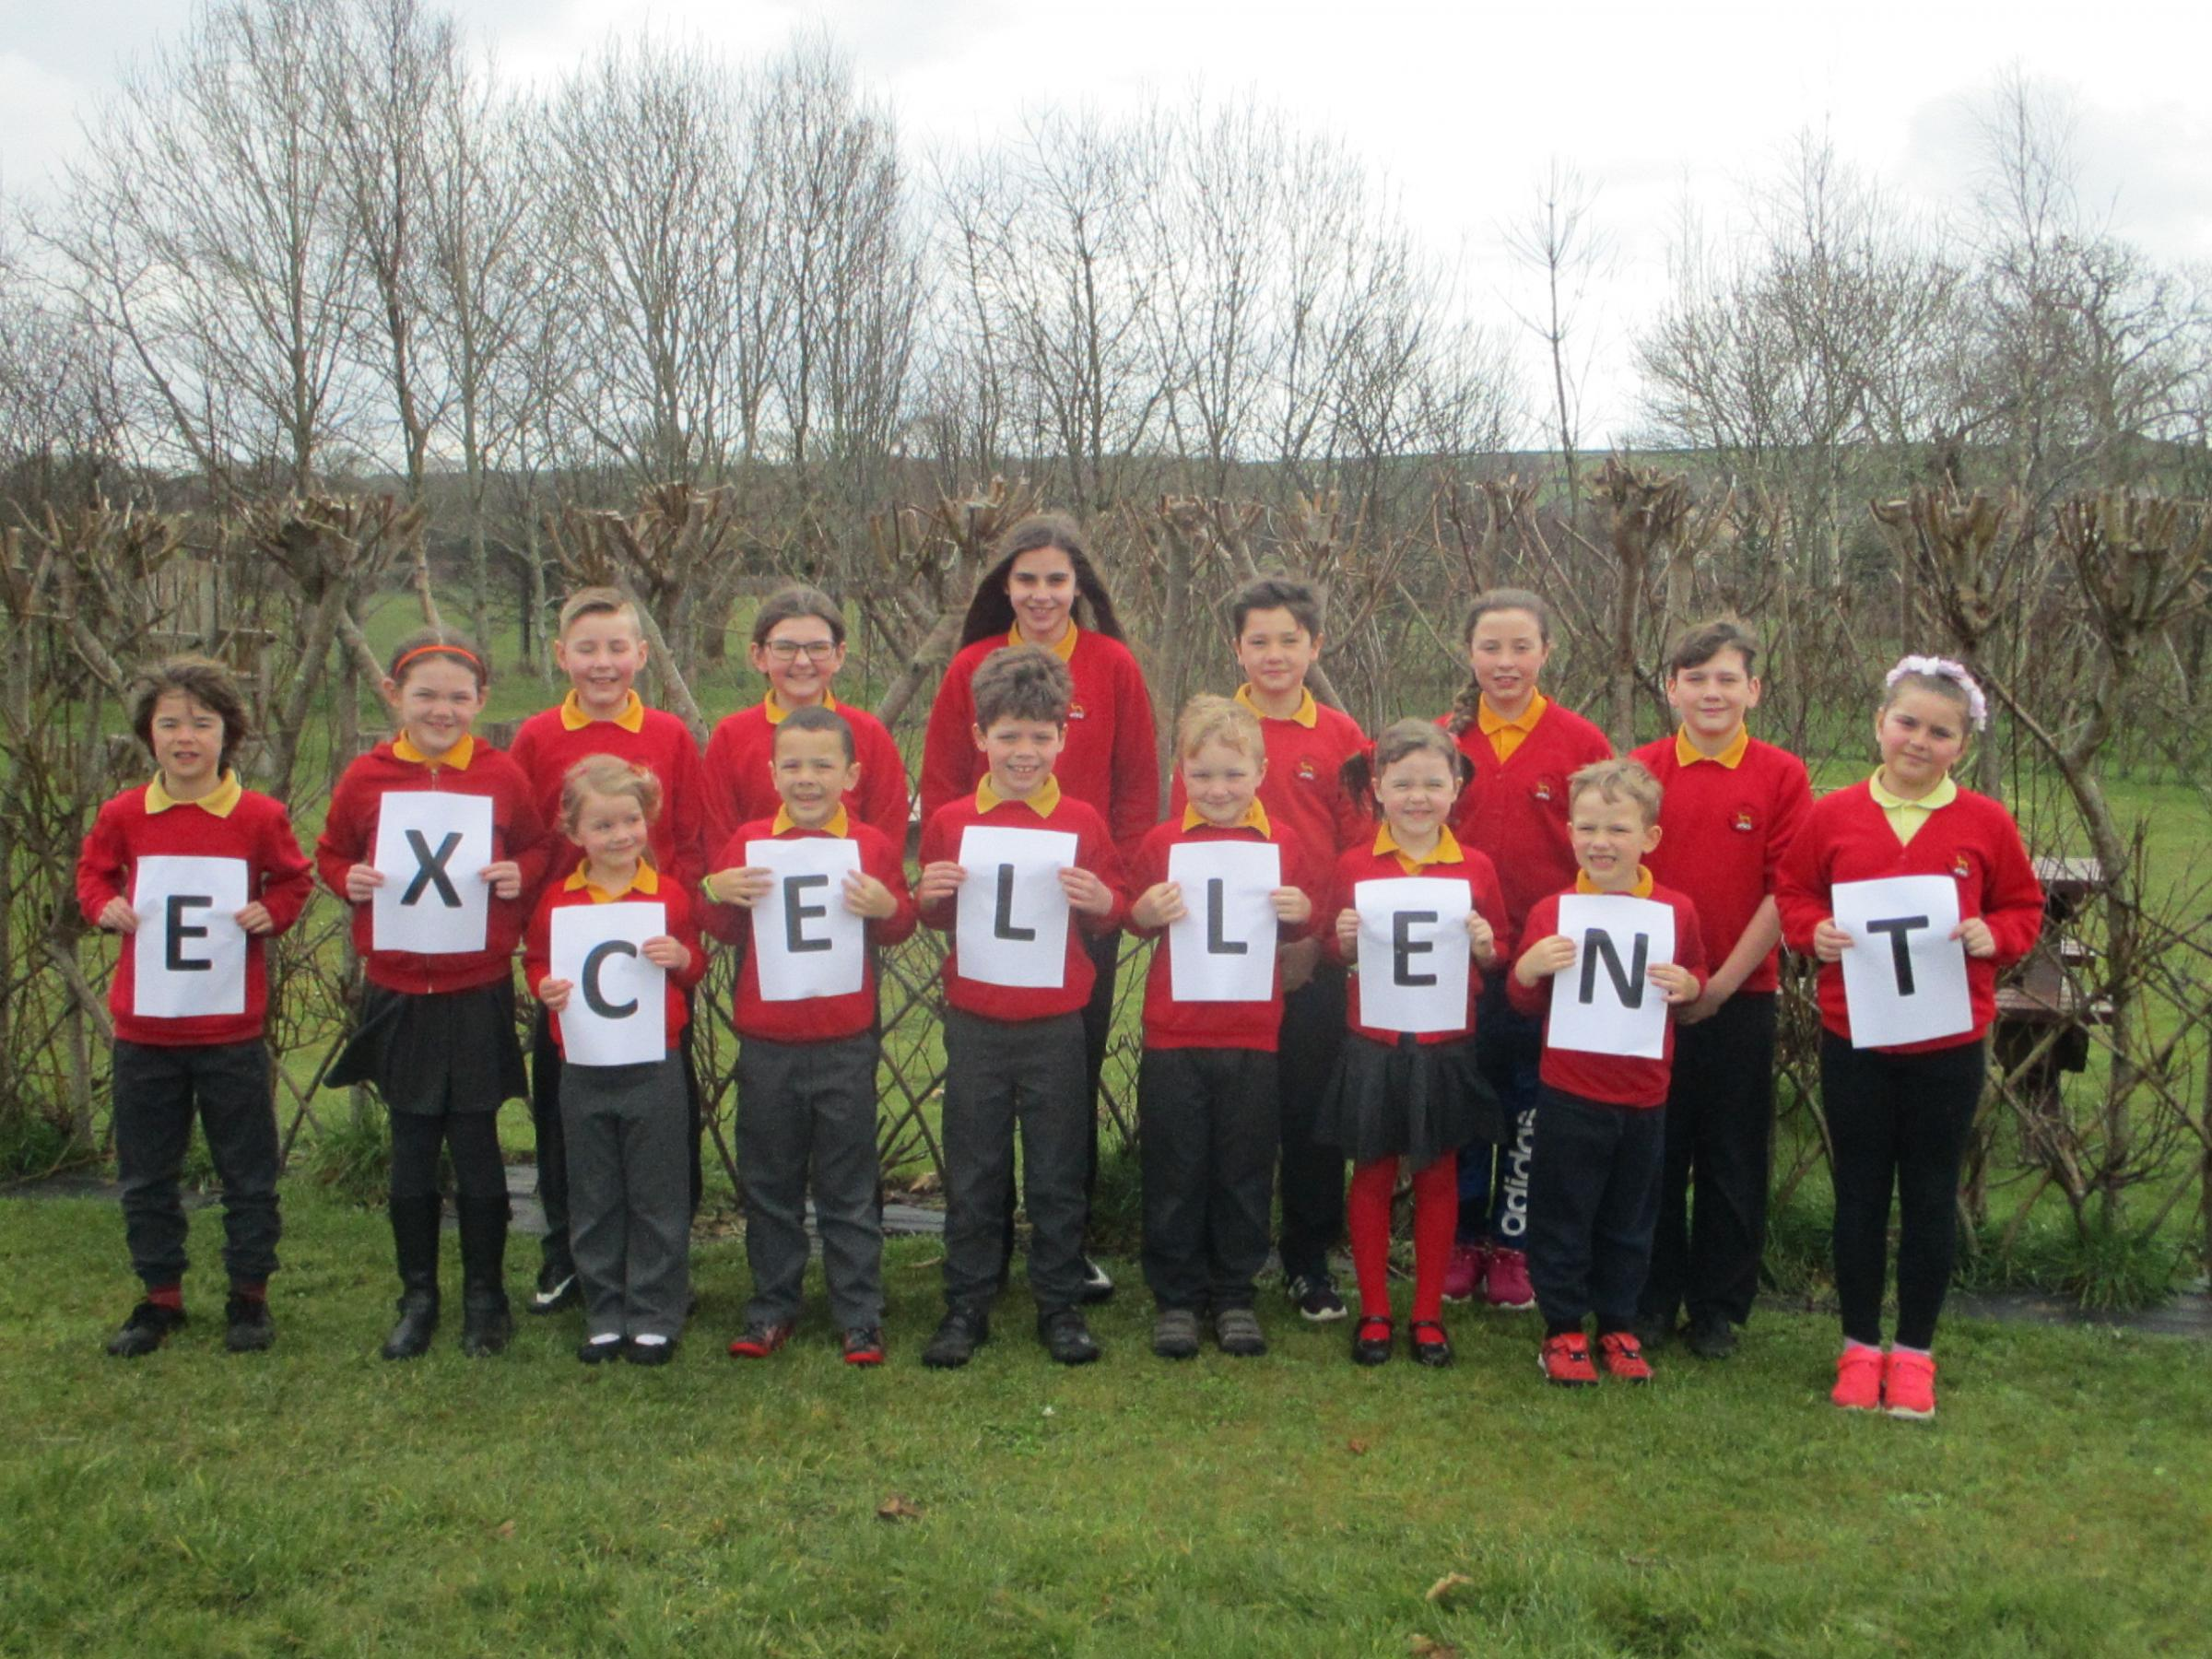 Lamphey Primary School has been identified as being excellent in a recent inspection report by ESTYN.